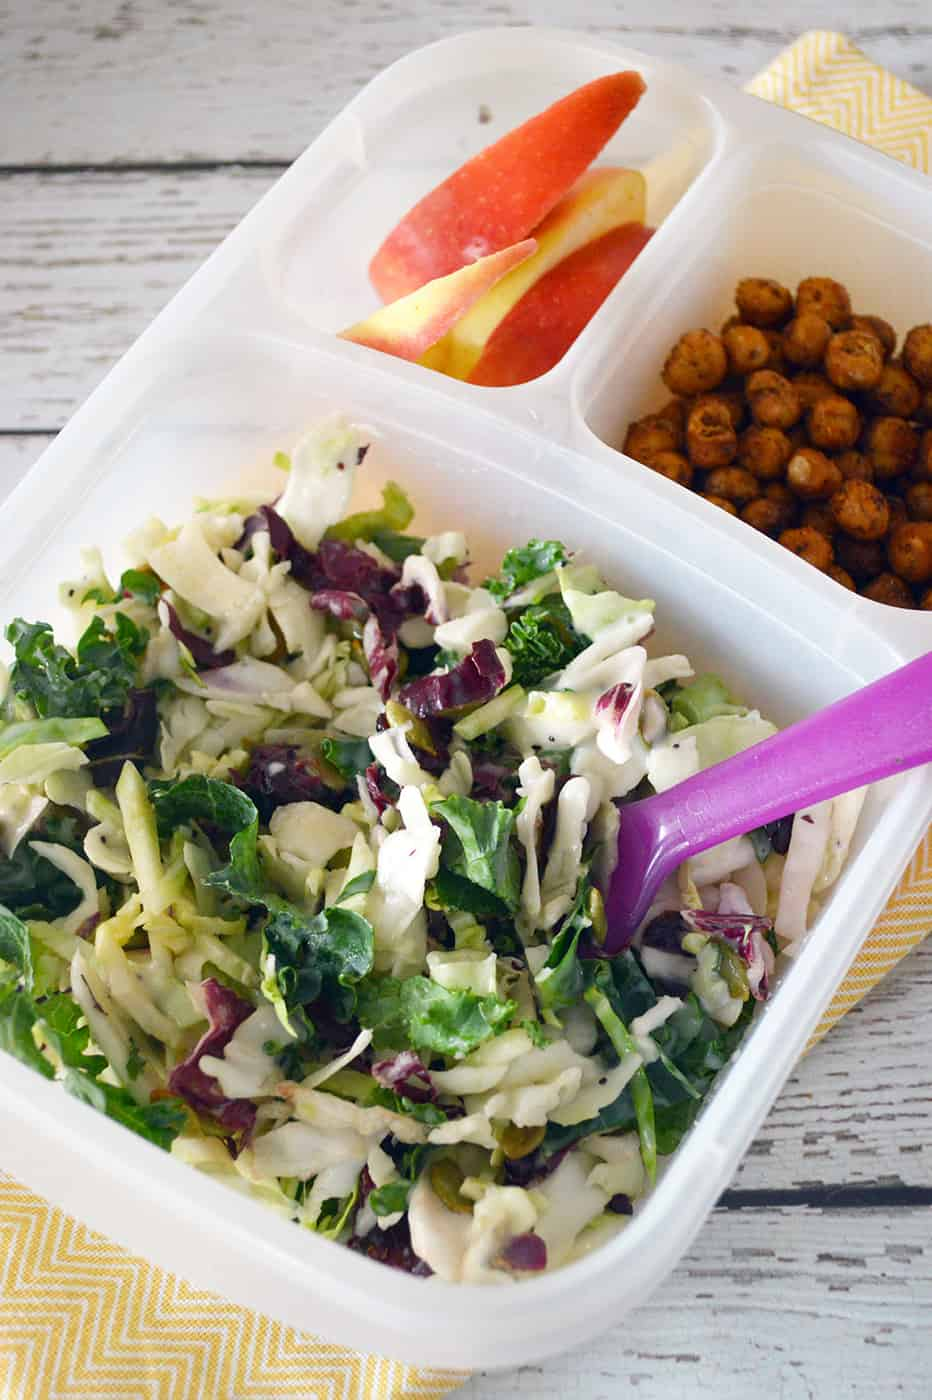 Bento box with sweet kale salad, apples and roasted chickpeas